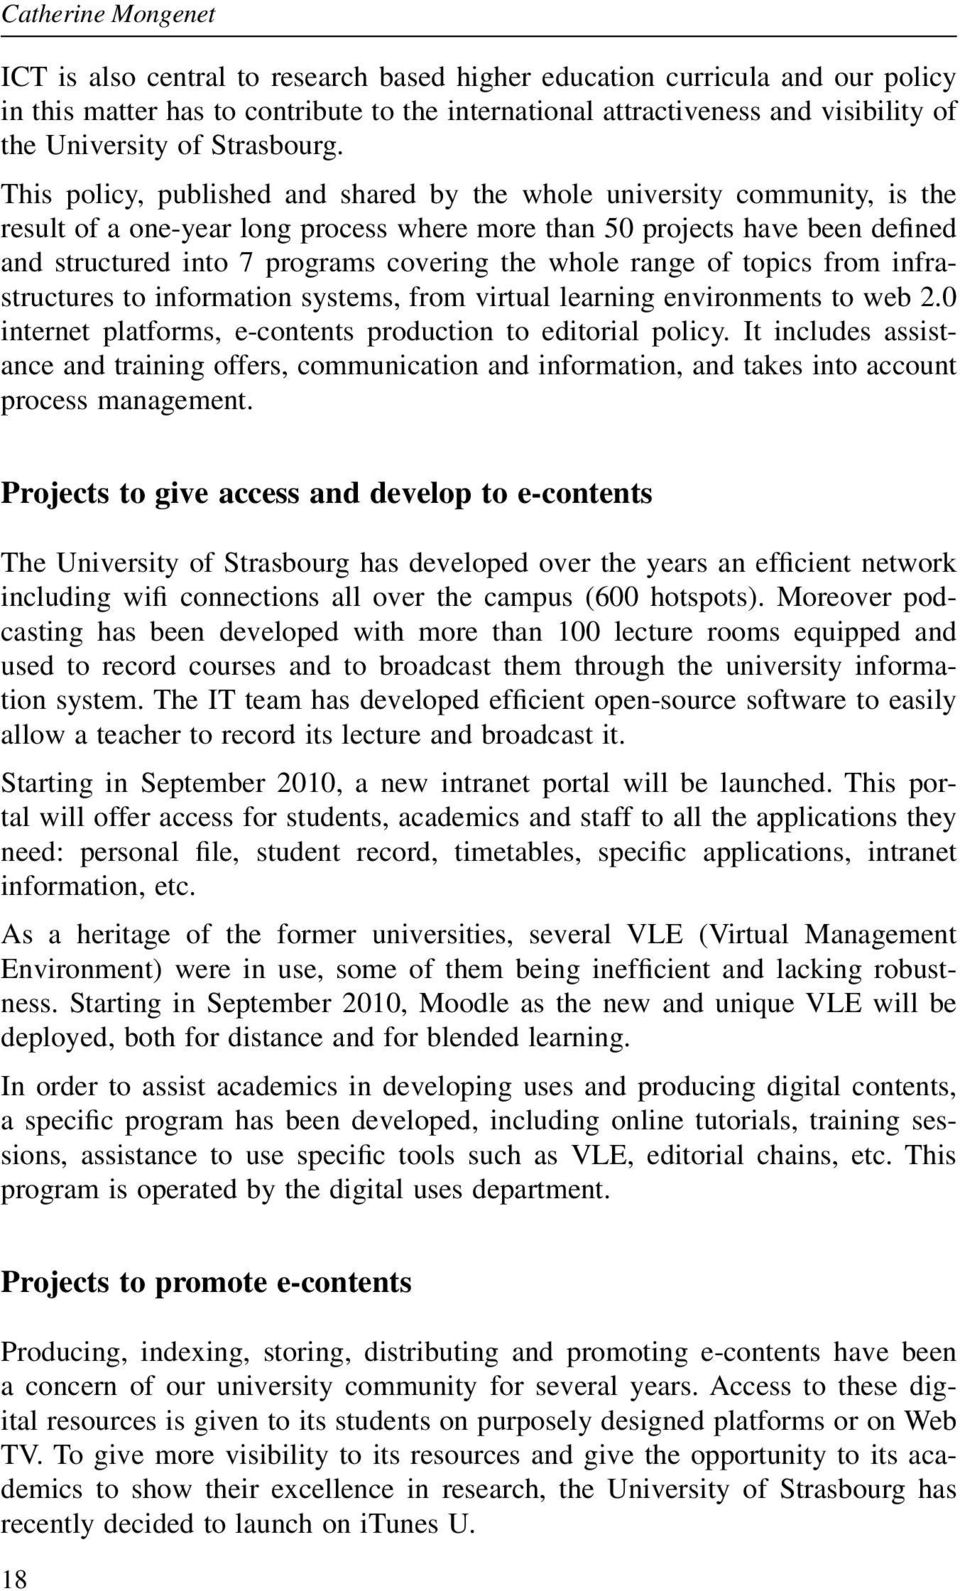 This policy, published and shared by the whole university community, is the result of a one-year long process where more than 50 projects have been defined and structured into 7 programs covering the